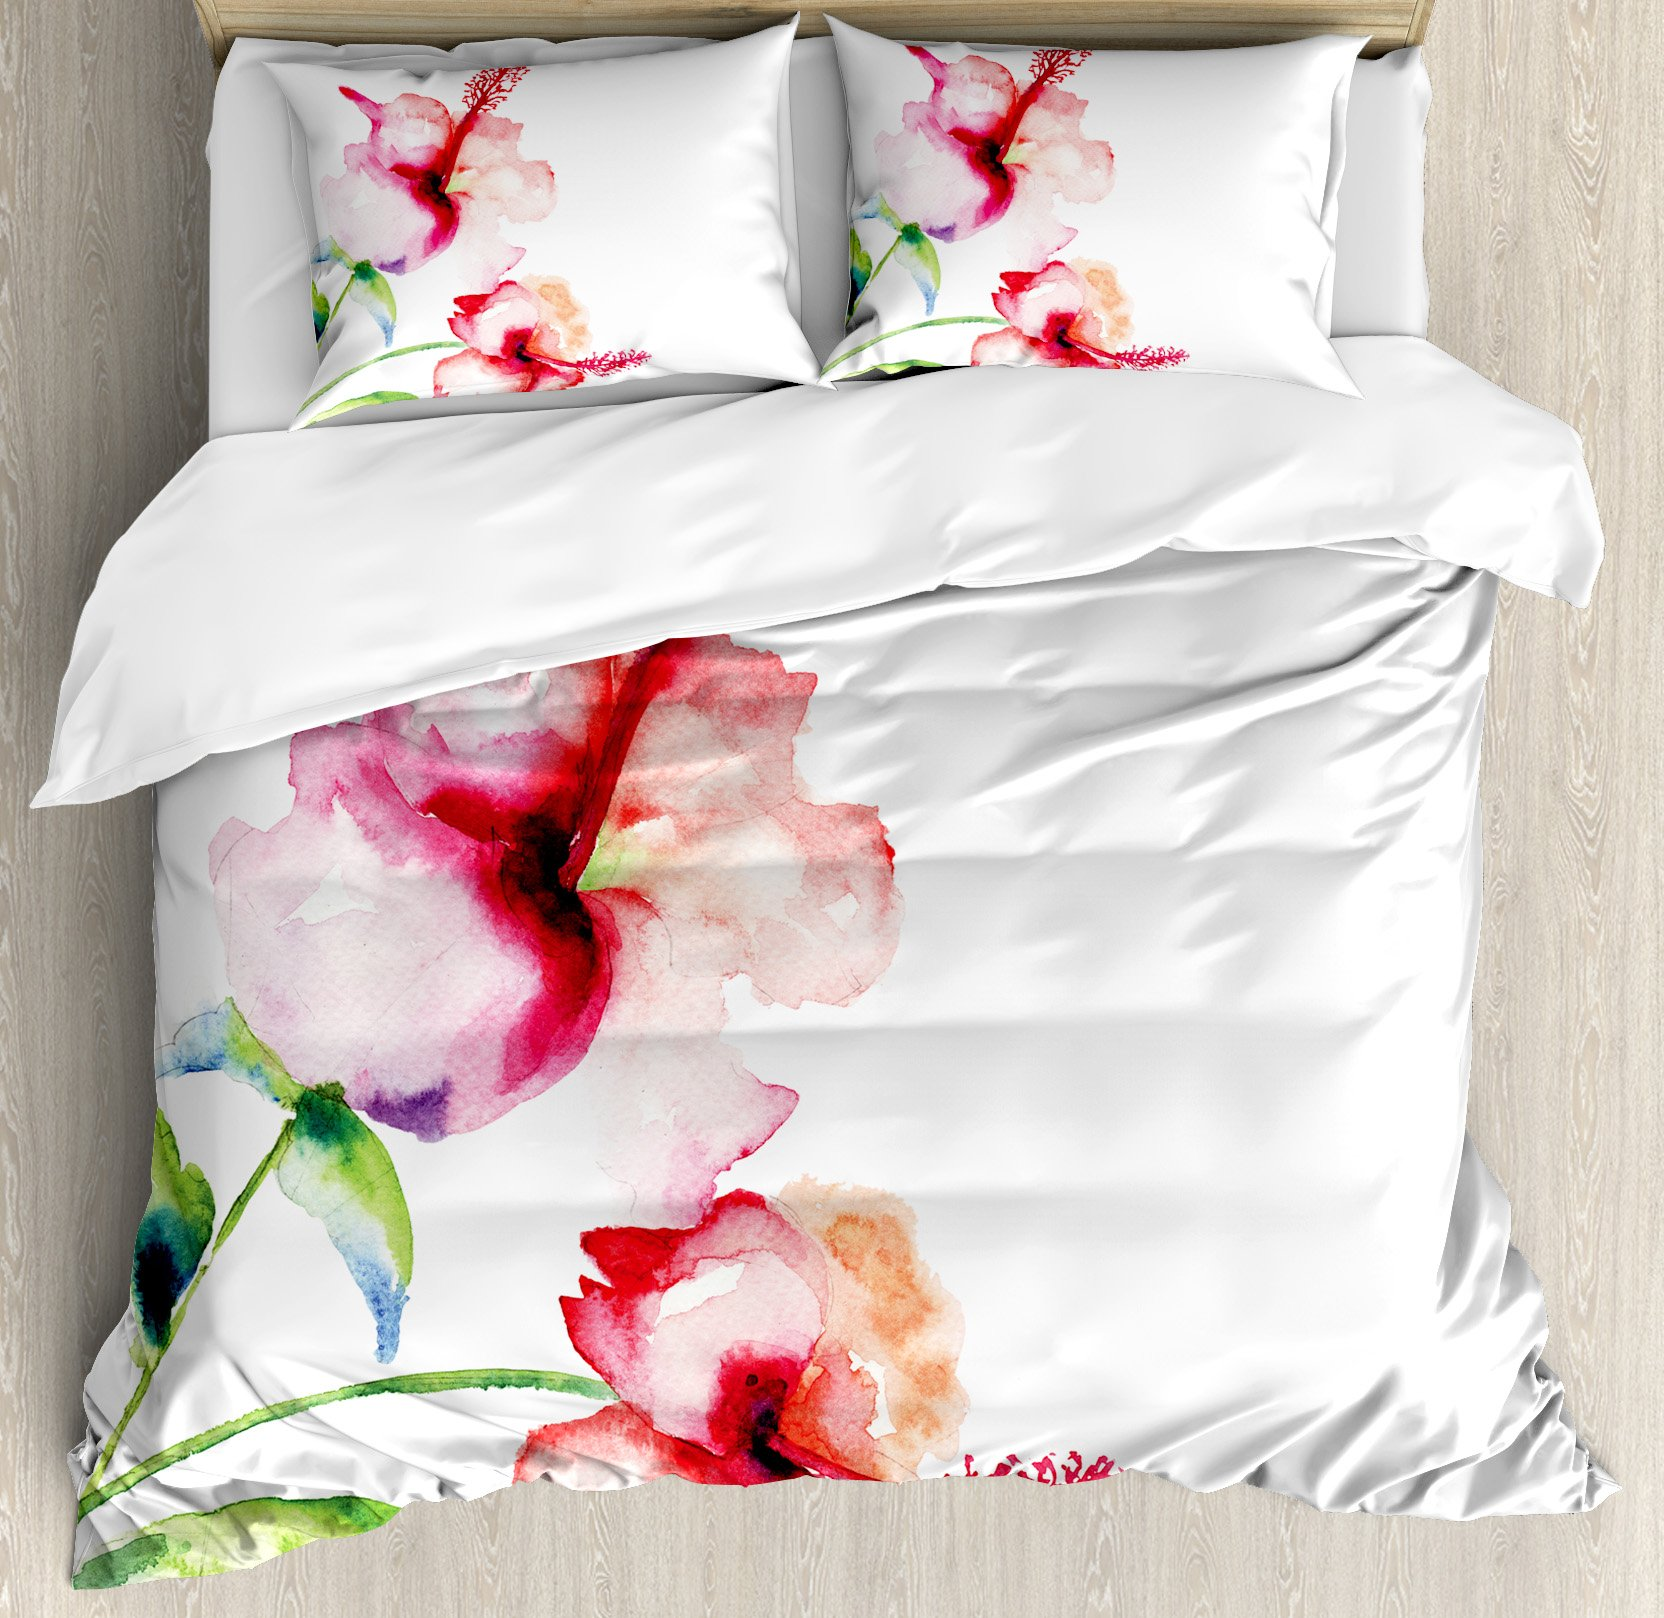 Ambesonne Watercolor Flower Duvet Cover Set King Size, Hibiscus Flowers on Plain Background in Pastel Colors Nature Home Decor, Decorative 3 Piece Bedding Set with 2 Pillow Shams, White Red Green